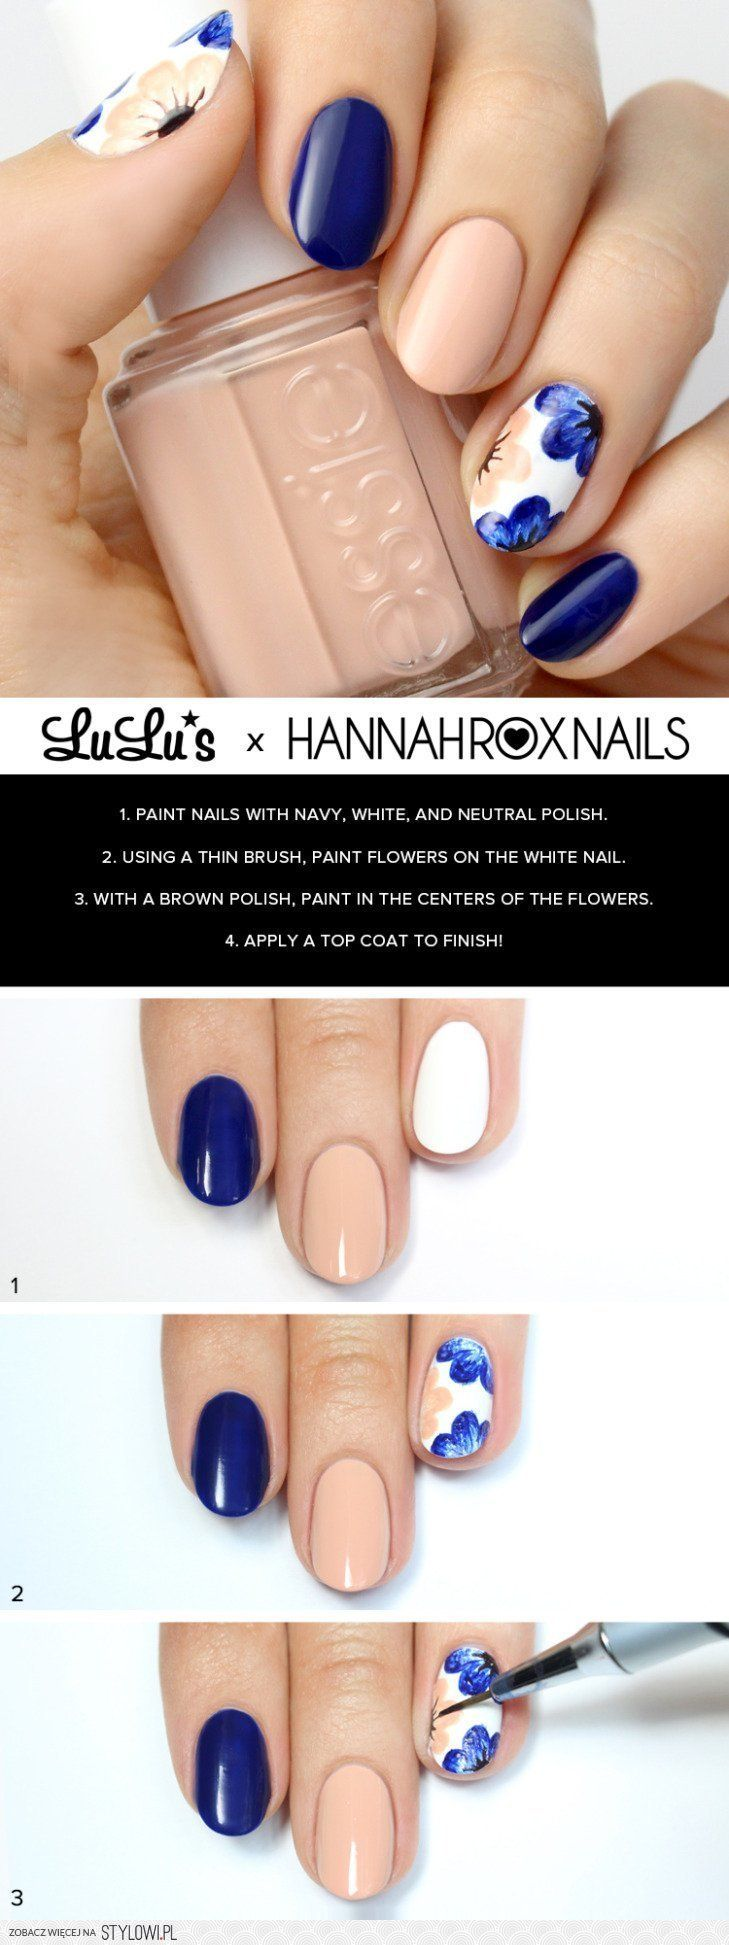 48 best Nails images on Pinterest | Nail design, Nail scissors and ...